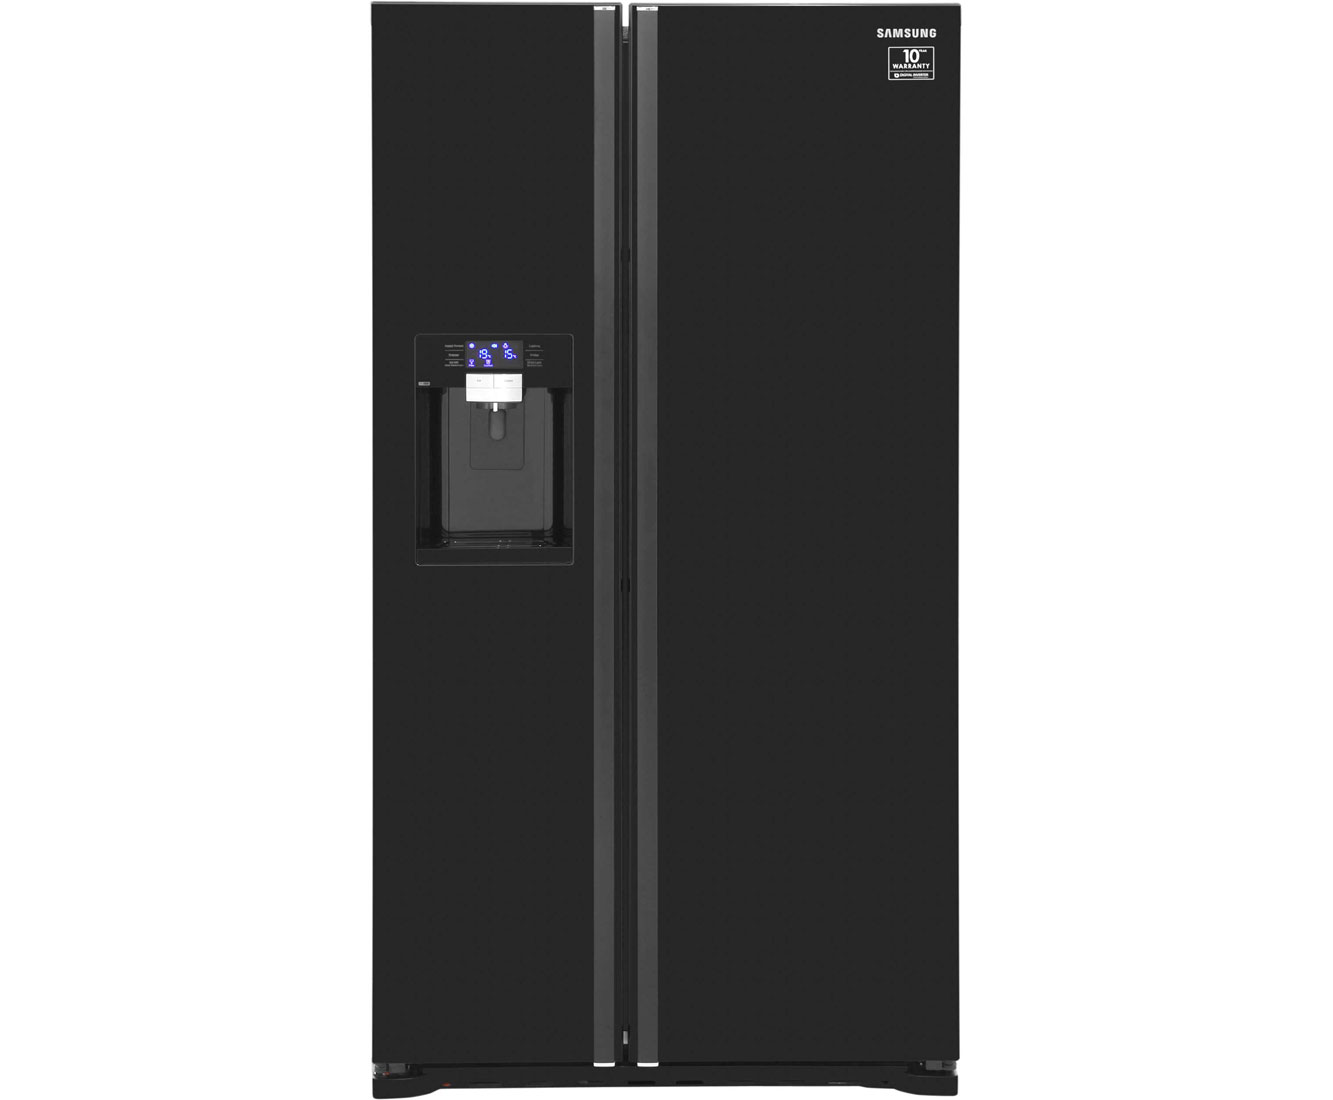 Samsung GSeries RSG5MUBP1X Free Standing American Fridge Freezer in Black Gloss